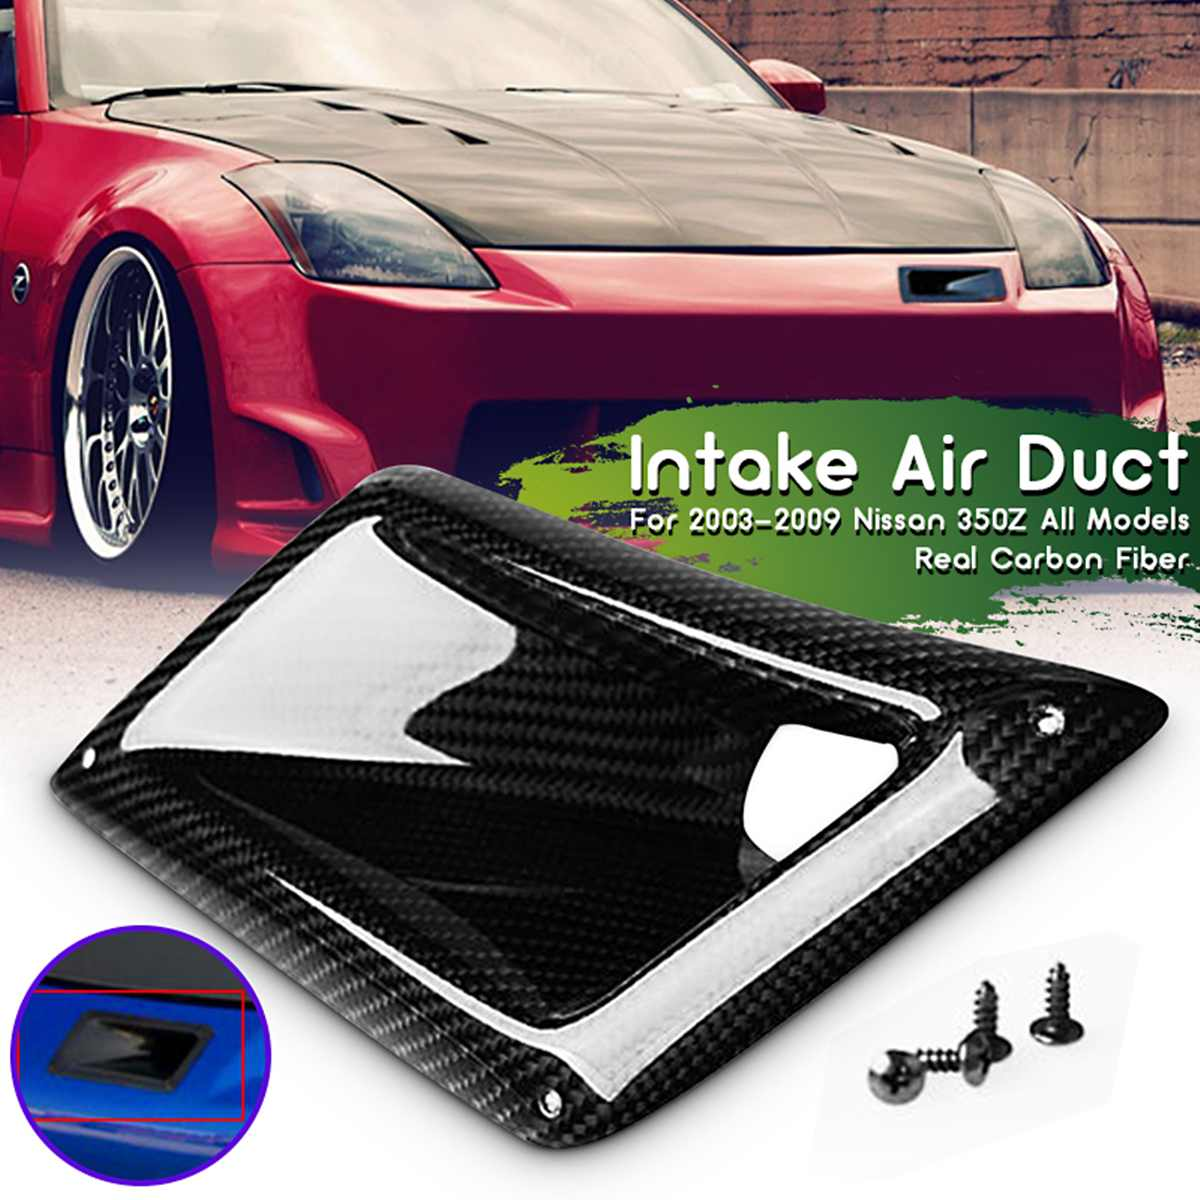 Rear Carbon Fiber Left Side Board Car Front Bumper Machine Cover Air Vent Intake Duct Outlet For Nissan 350Z Z33 2003-2009 image